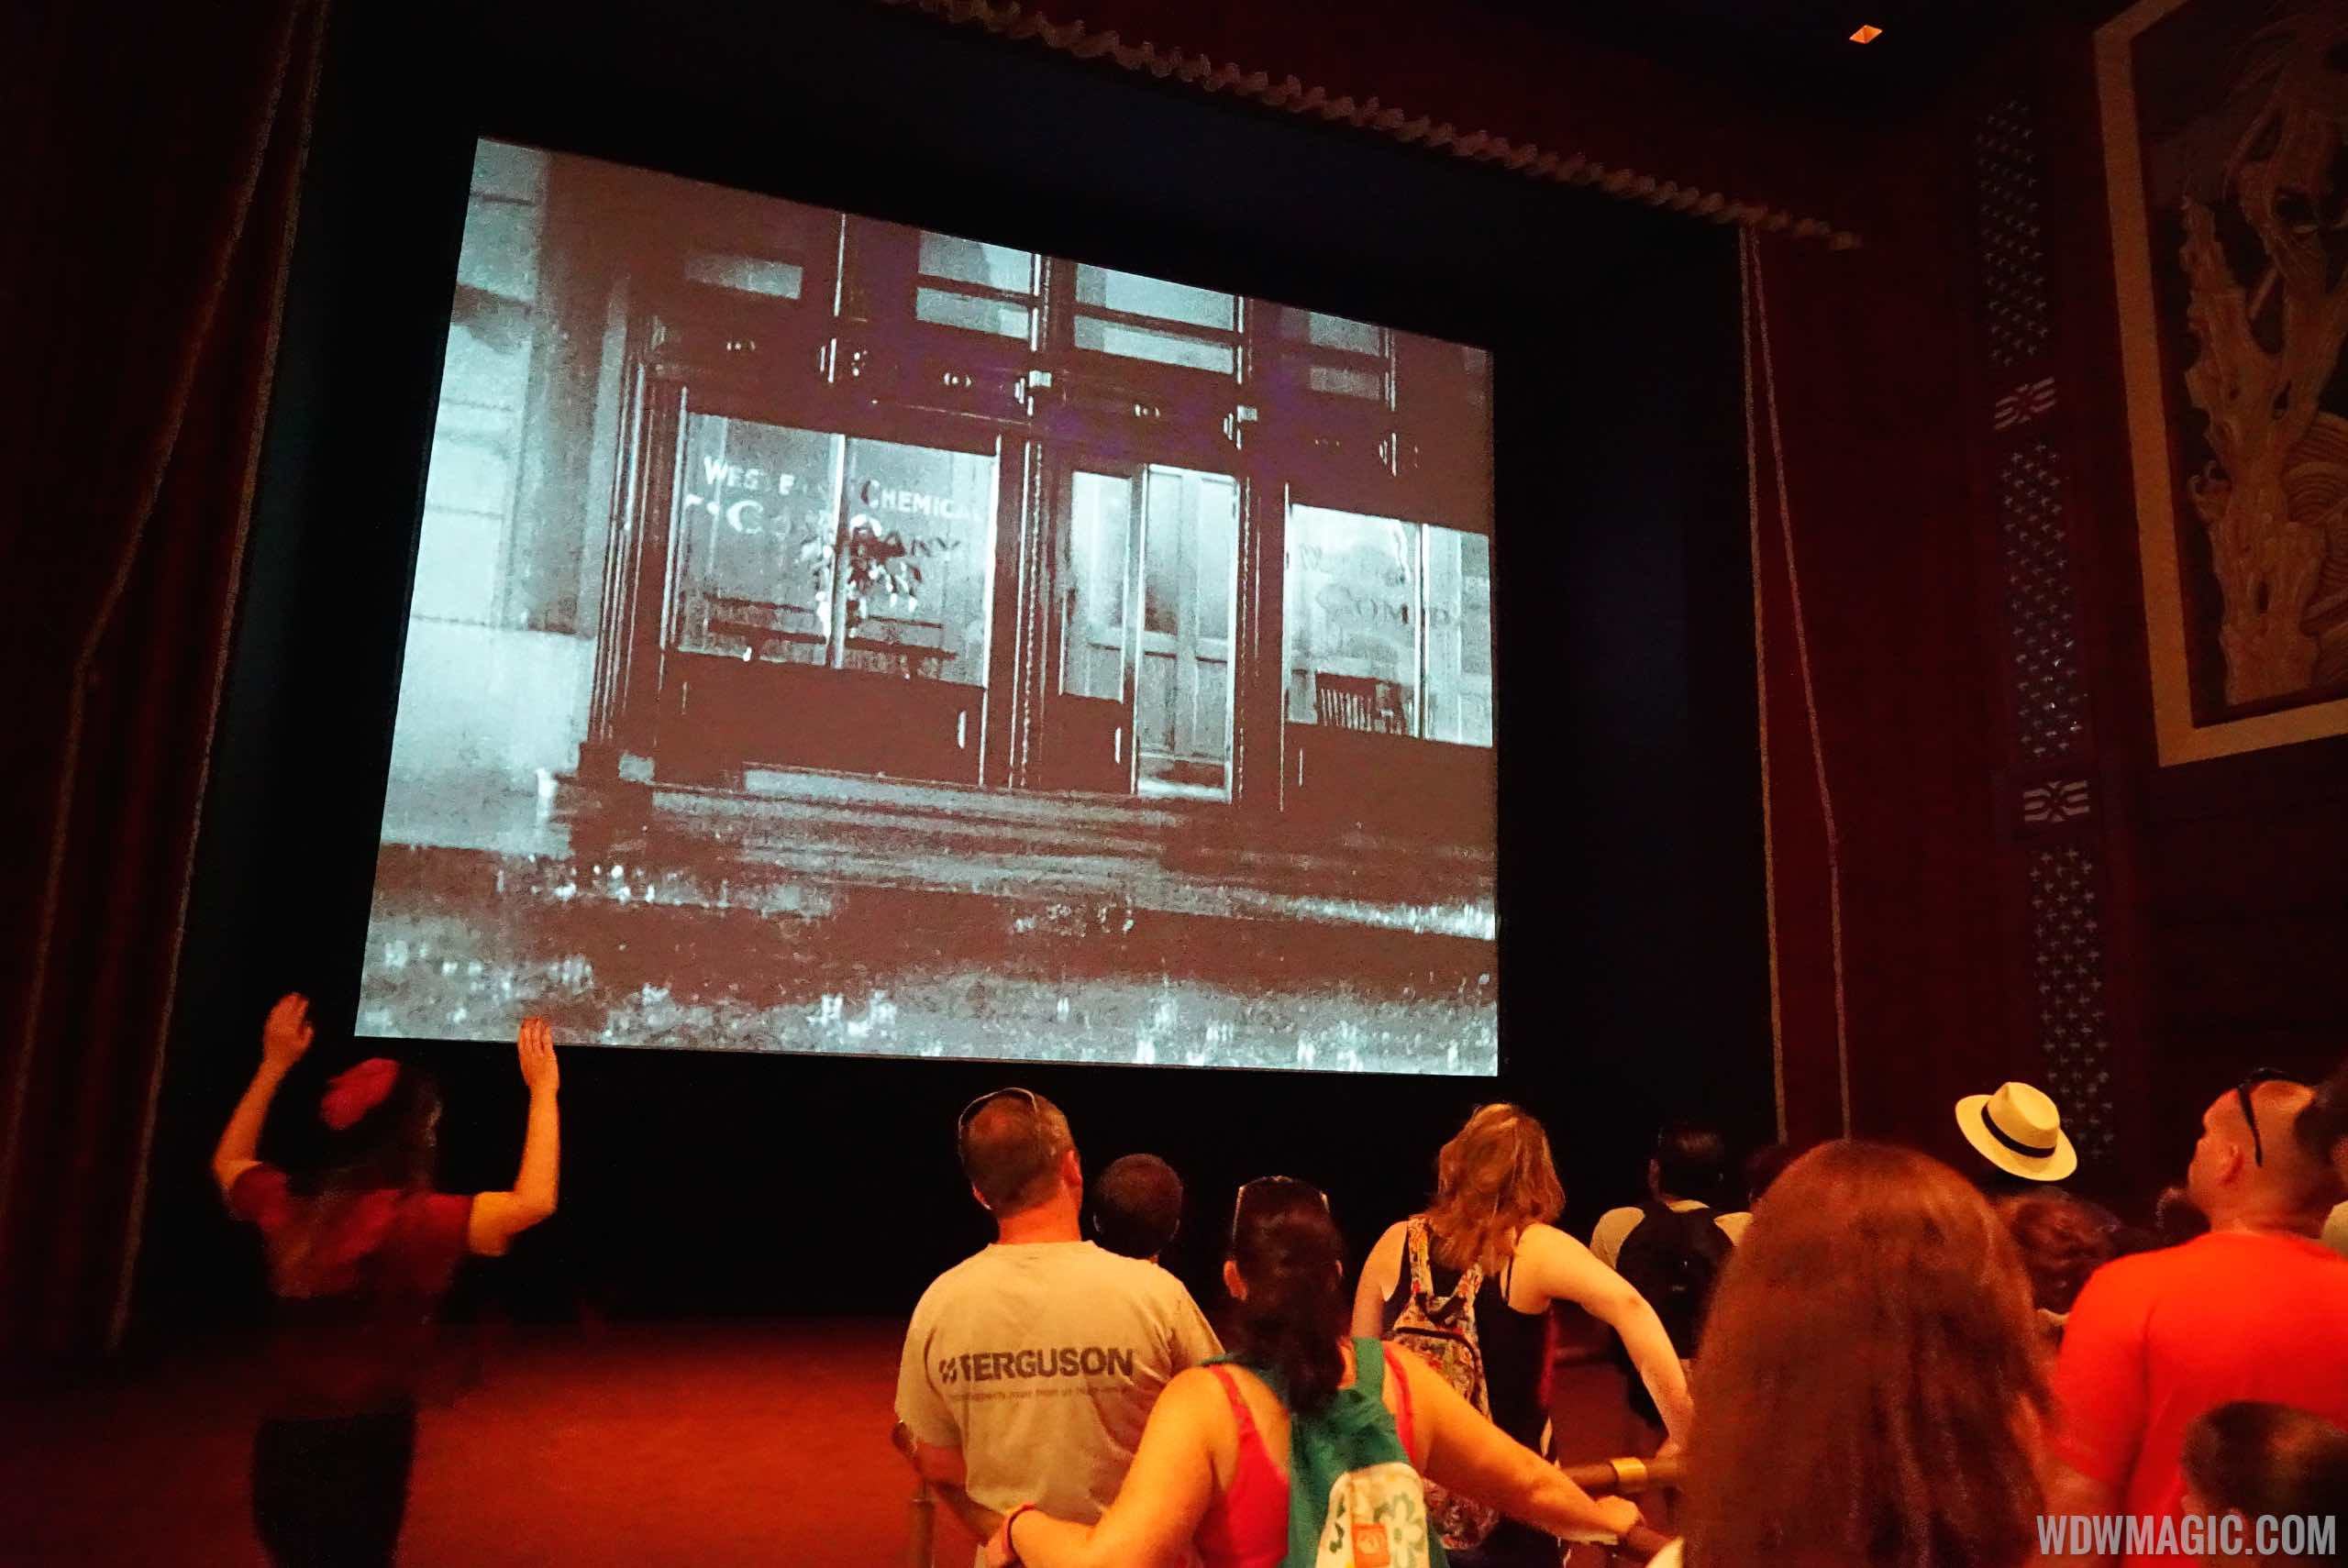 The Great Movie Ride TCM updates - New pre-show movie